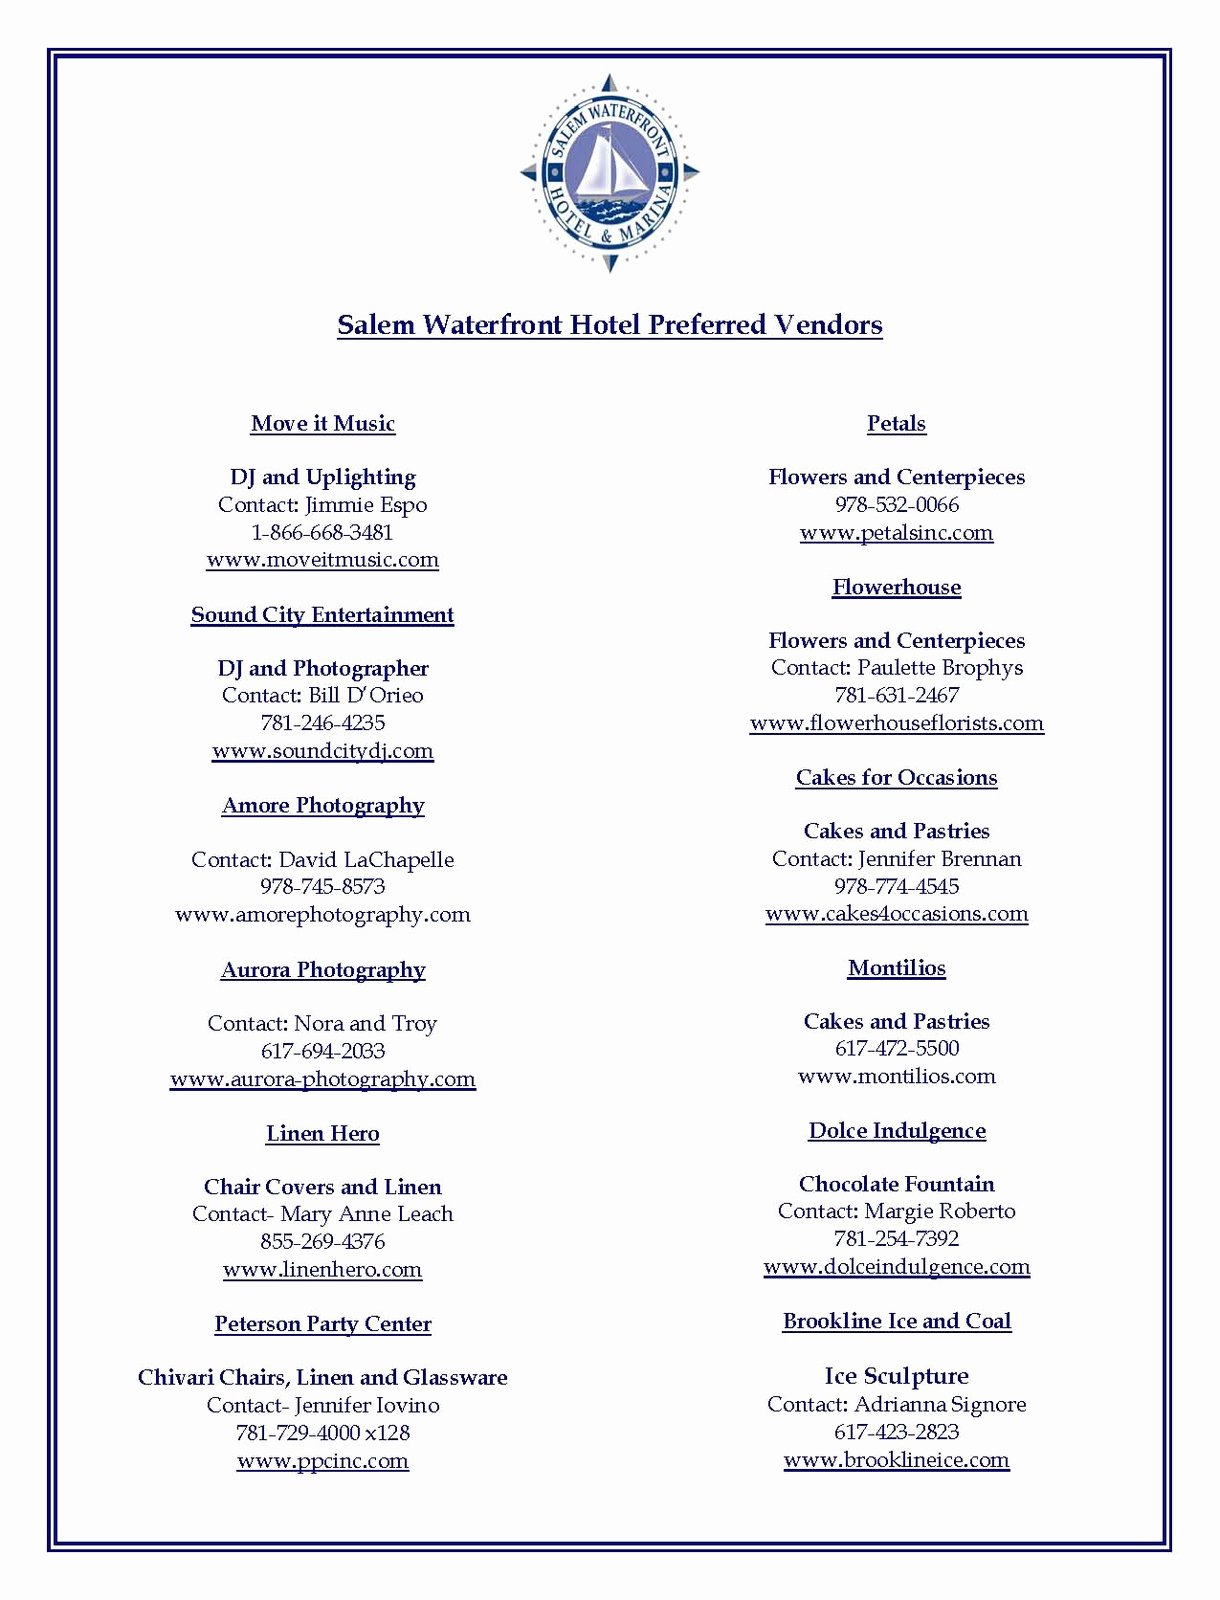 Wedding Vendor Contact List Template Lovely Preferred Vendor Information